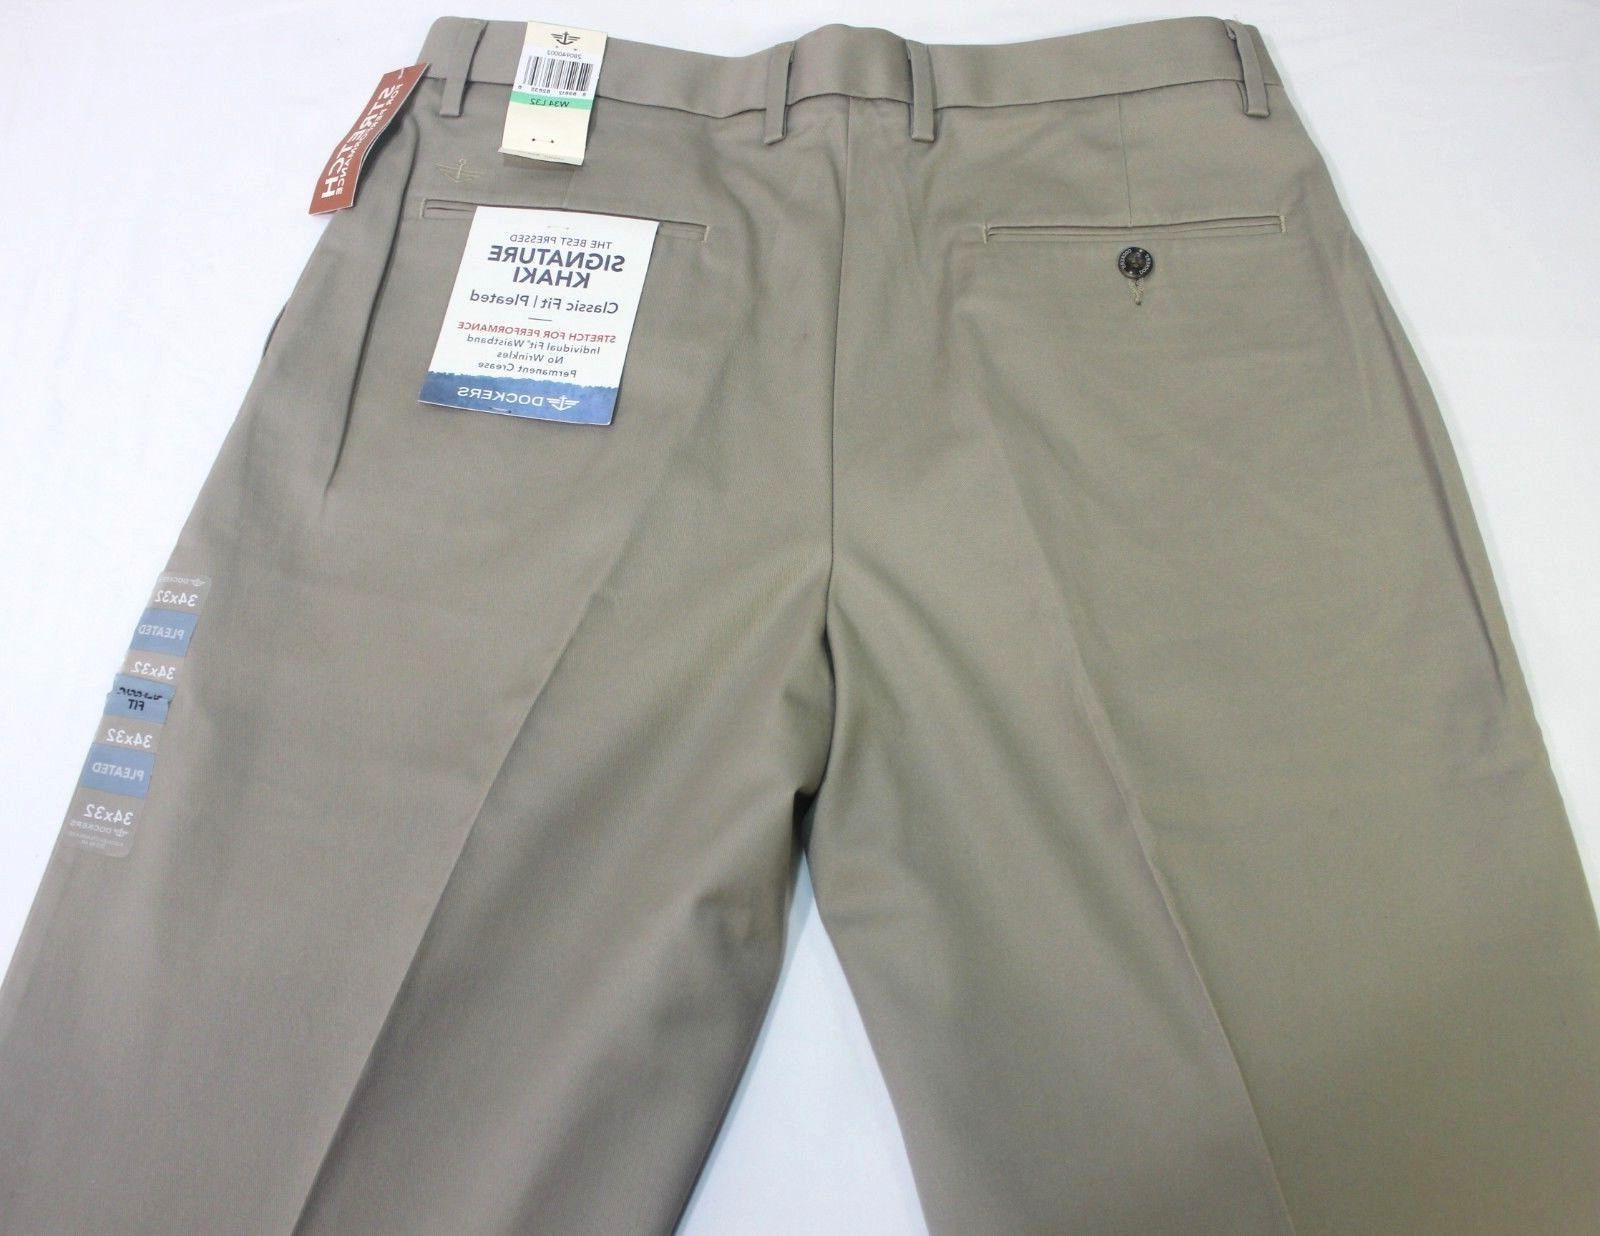 Men's Dockers Pressed Signature Pleated Classic Fit Cotton Pants